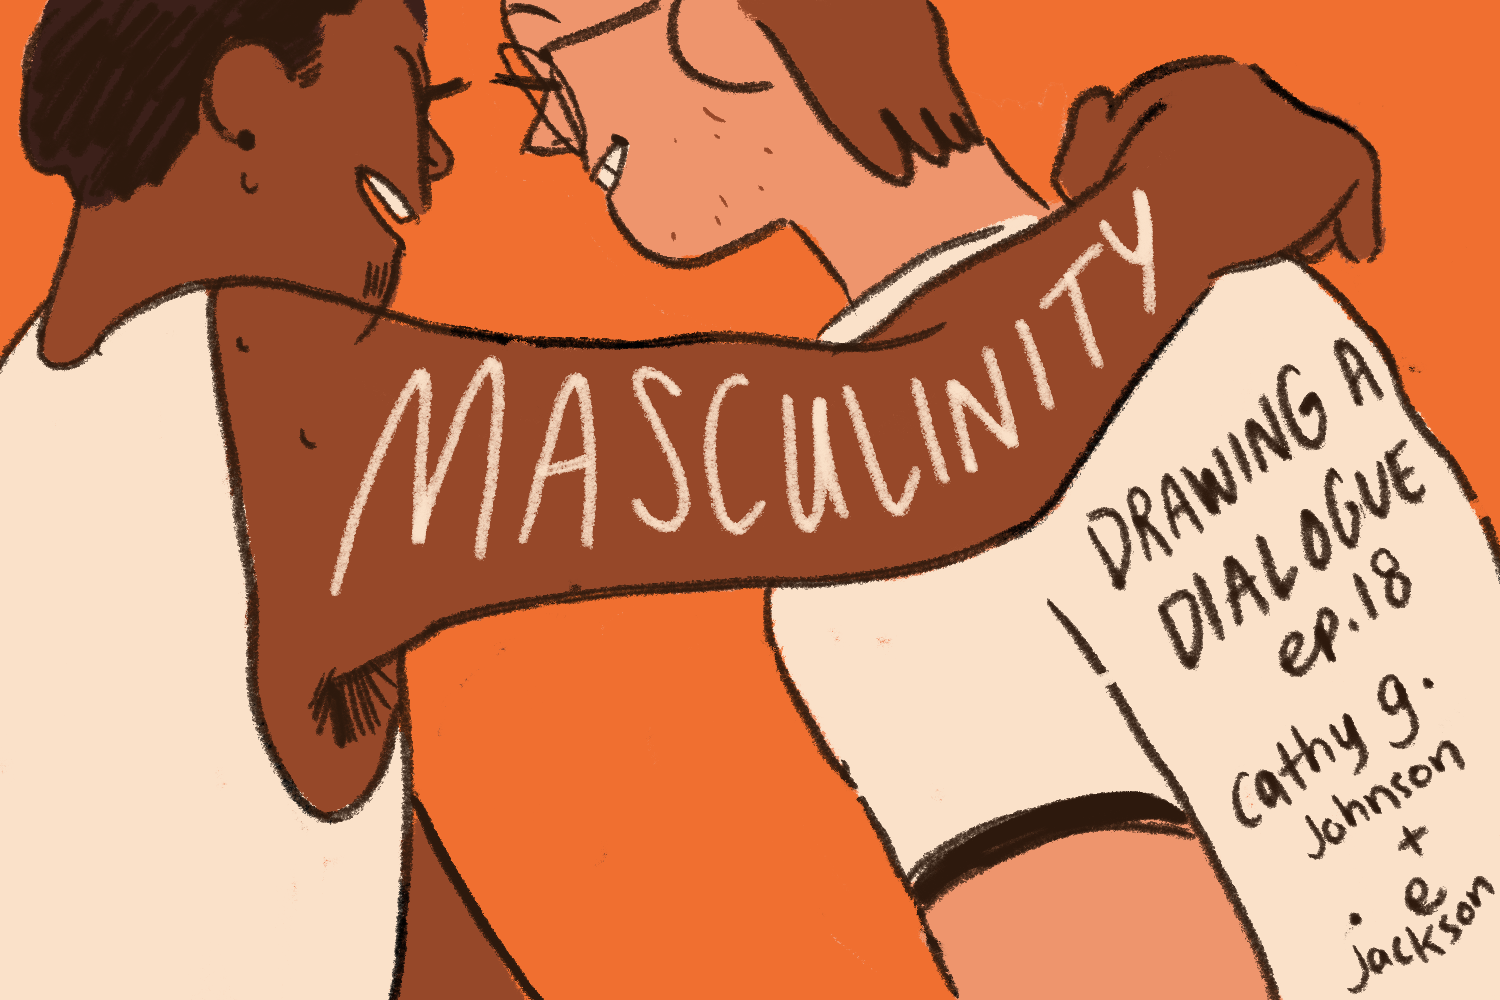 Drawing a Dialogue, Episode 18: Masculinity